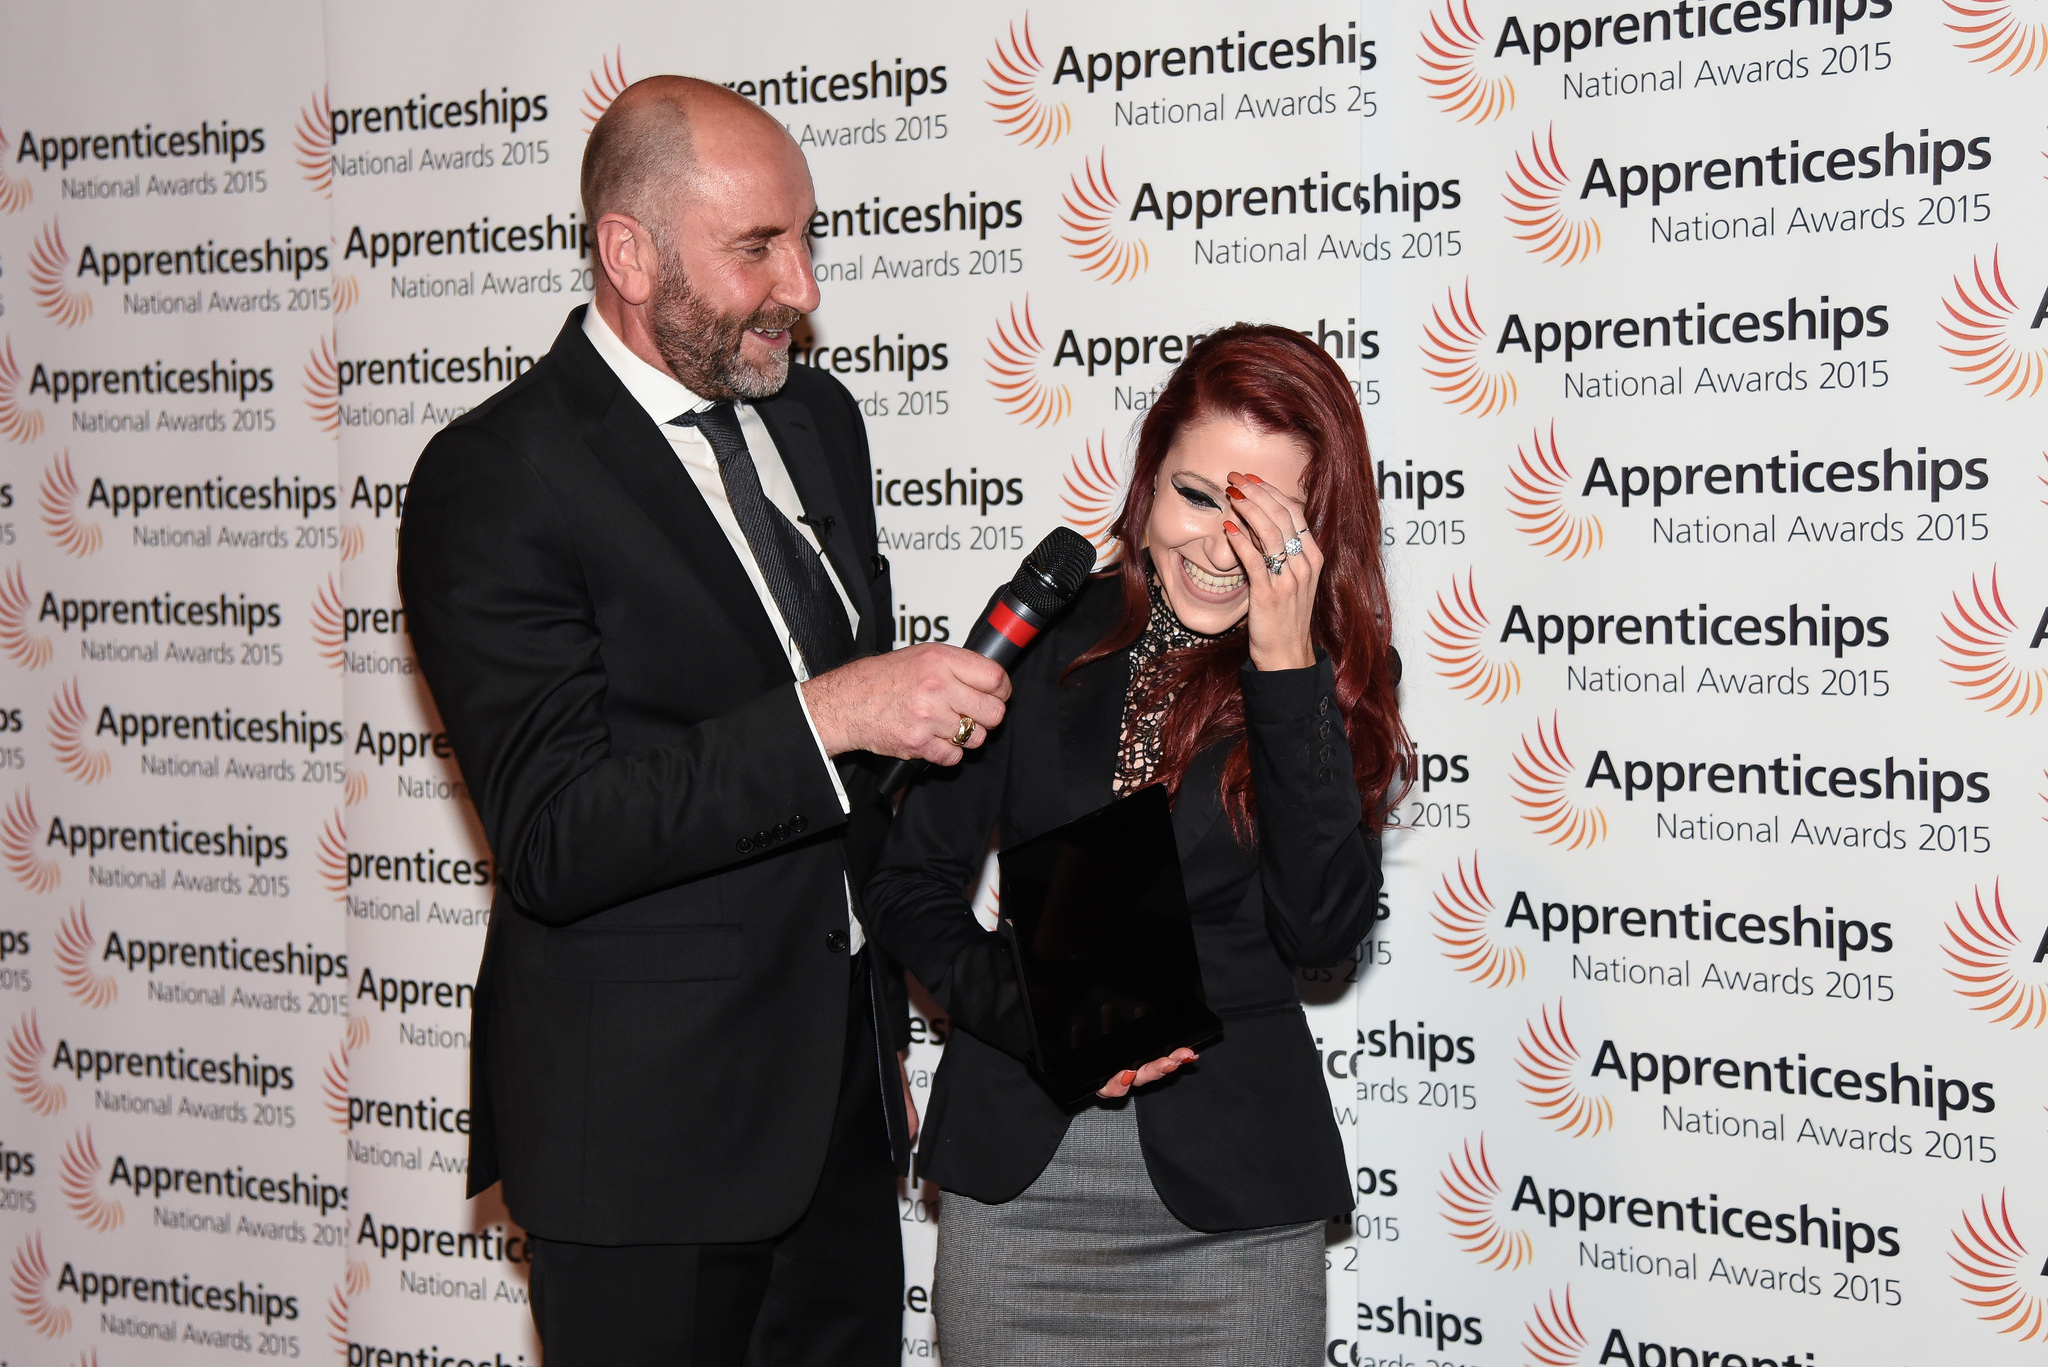 Yorkshire & the Humber host Garry Rae at National Apprenticeship Awards with Apprentice of the Year Award Winner, April Bell, level three, October 8